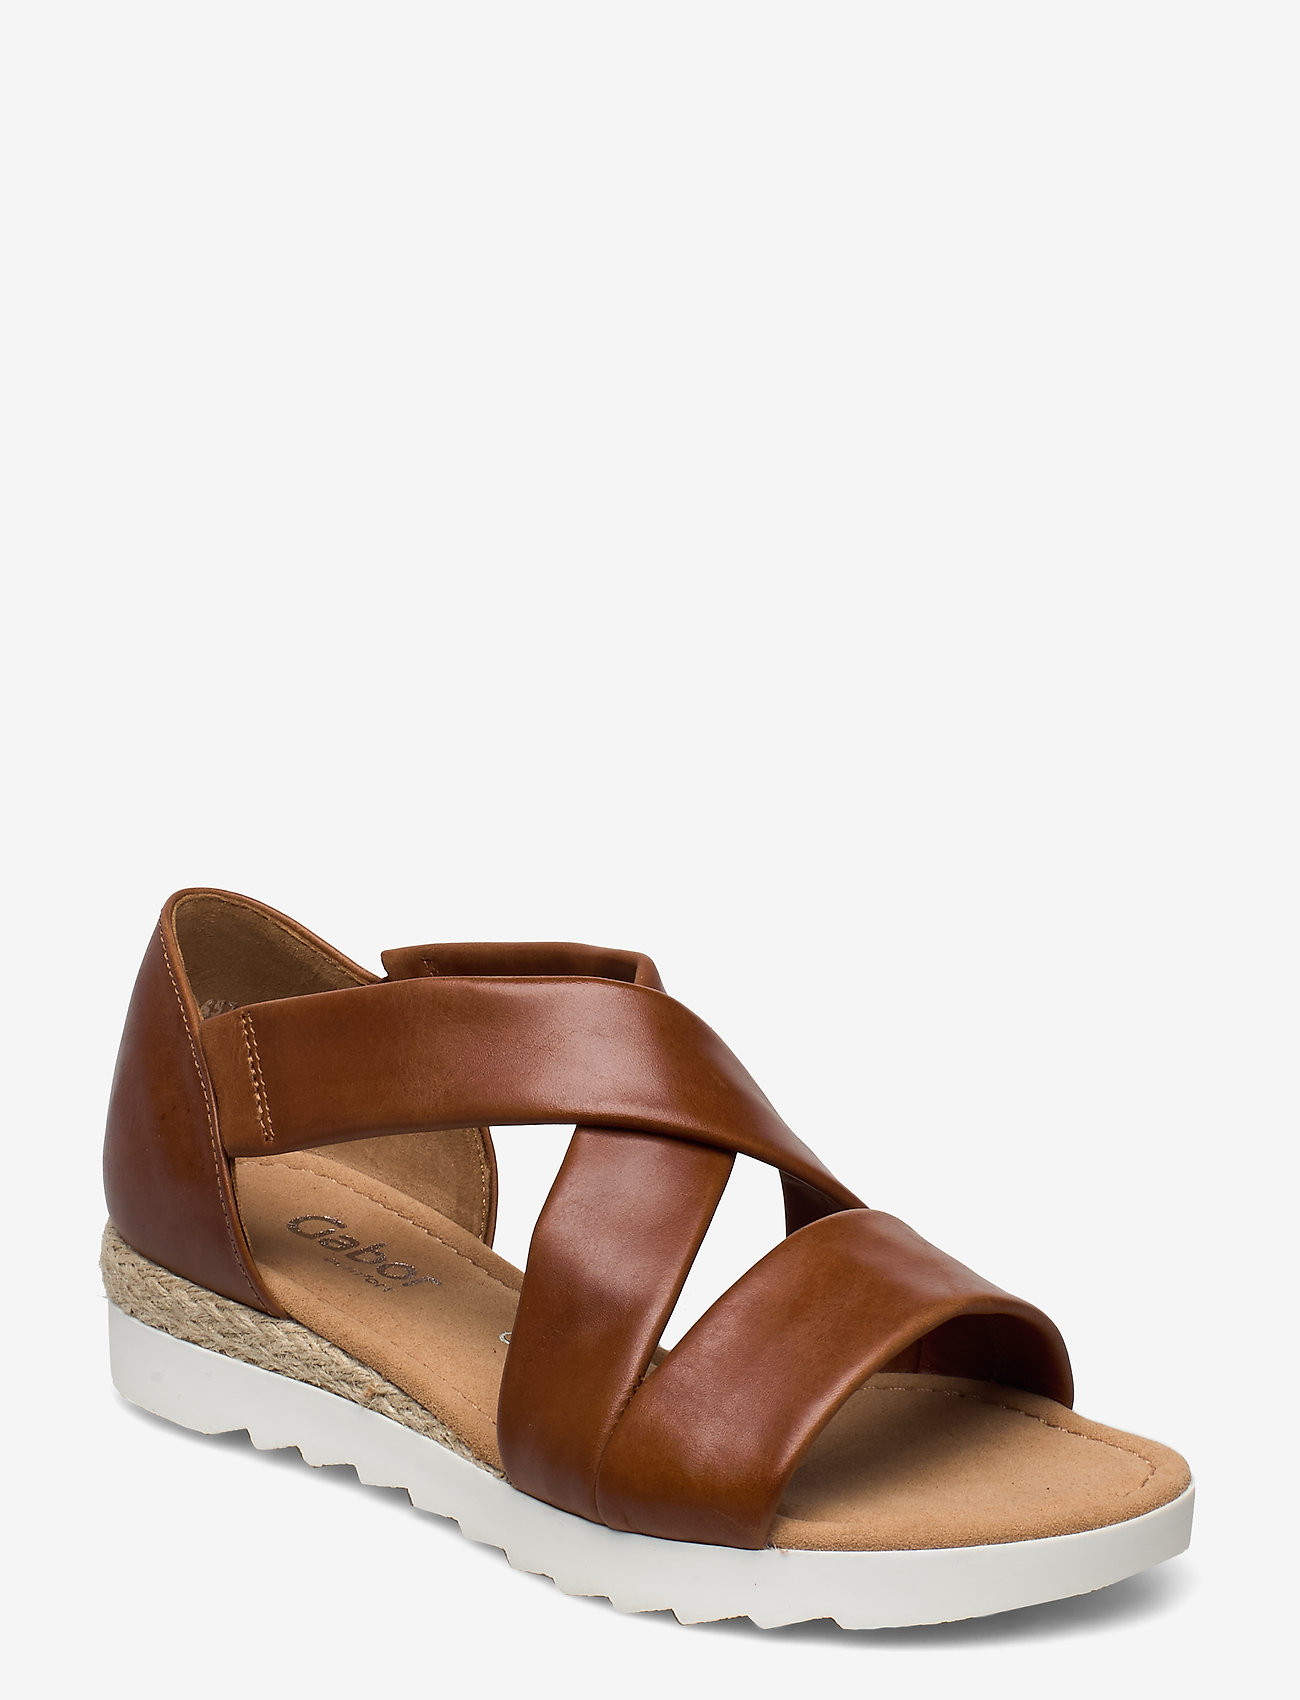 Gabor - sandals - høyhælte sandaler - brown